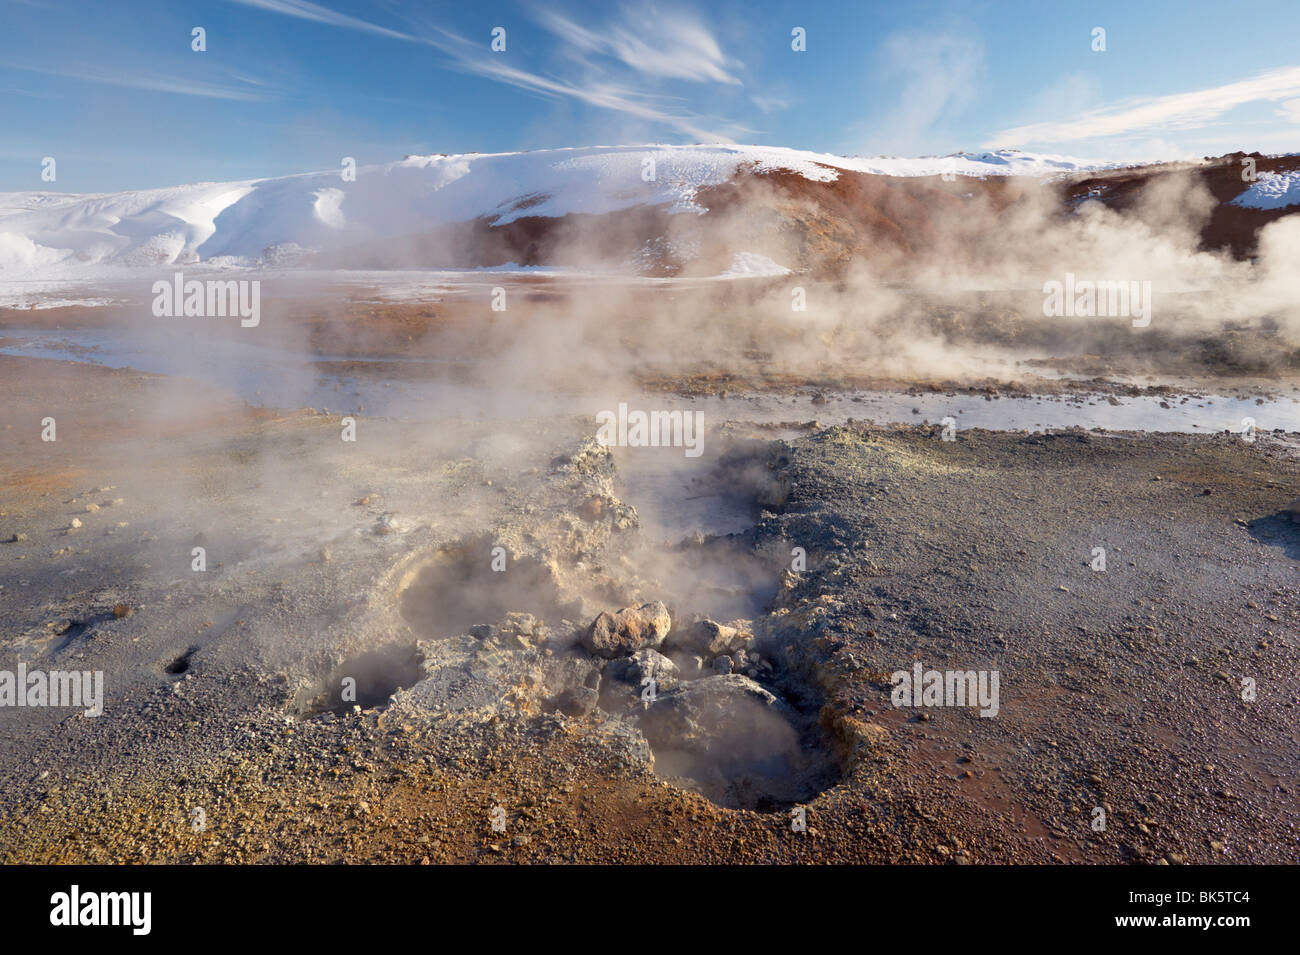 Geothermal activity of mudpots, hot springs and fumaroles, at Krisuvik, Reykjanes Peninsula, south-west Iceland, - Stock Image